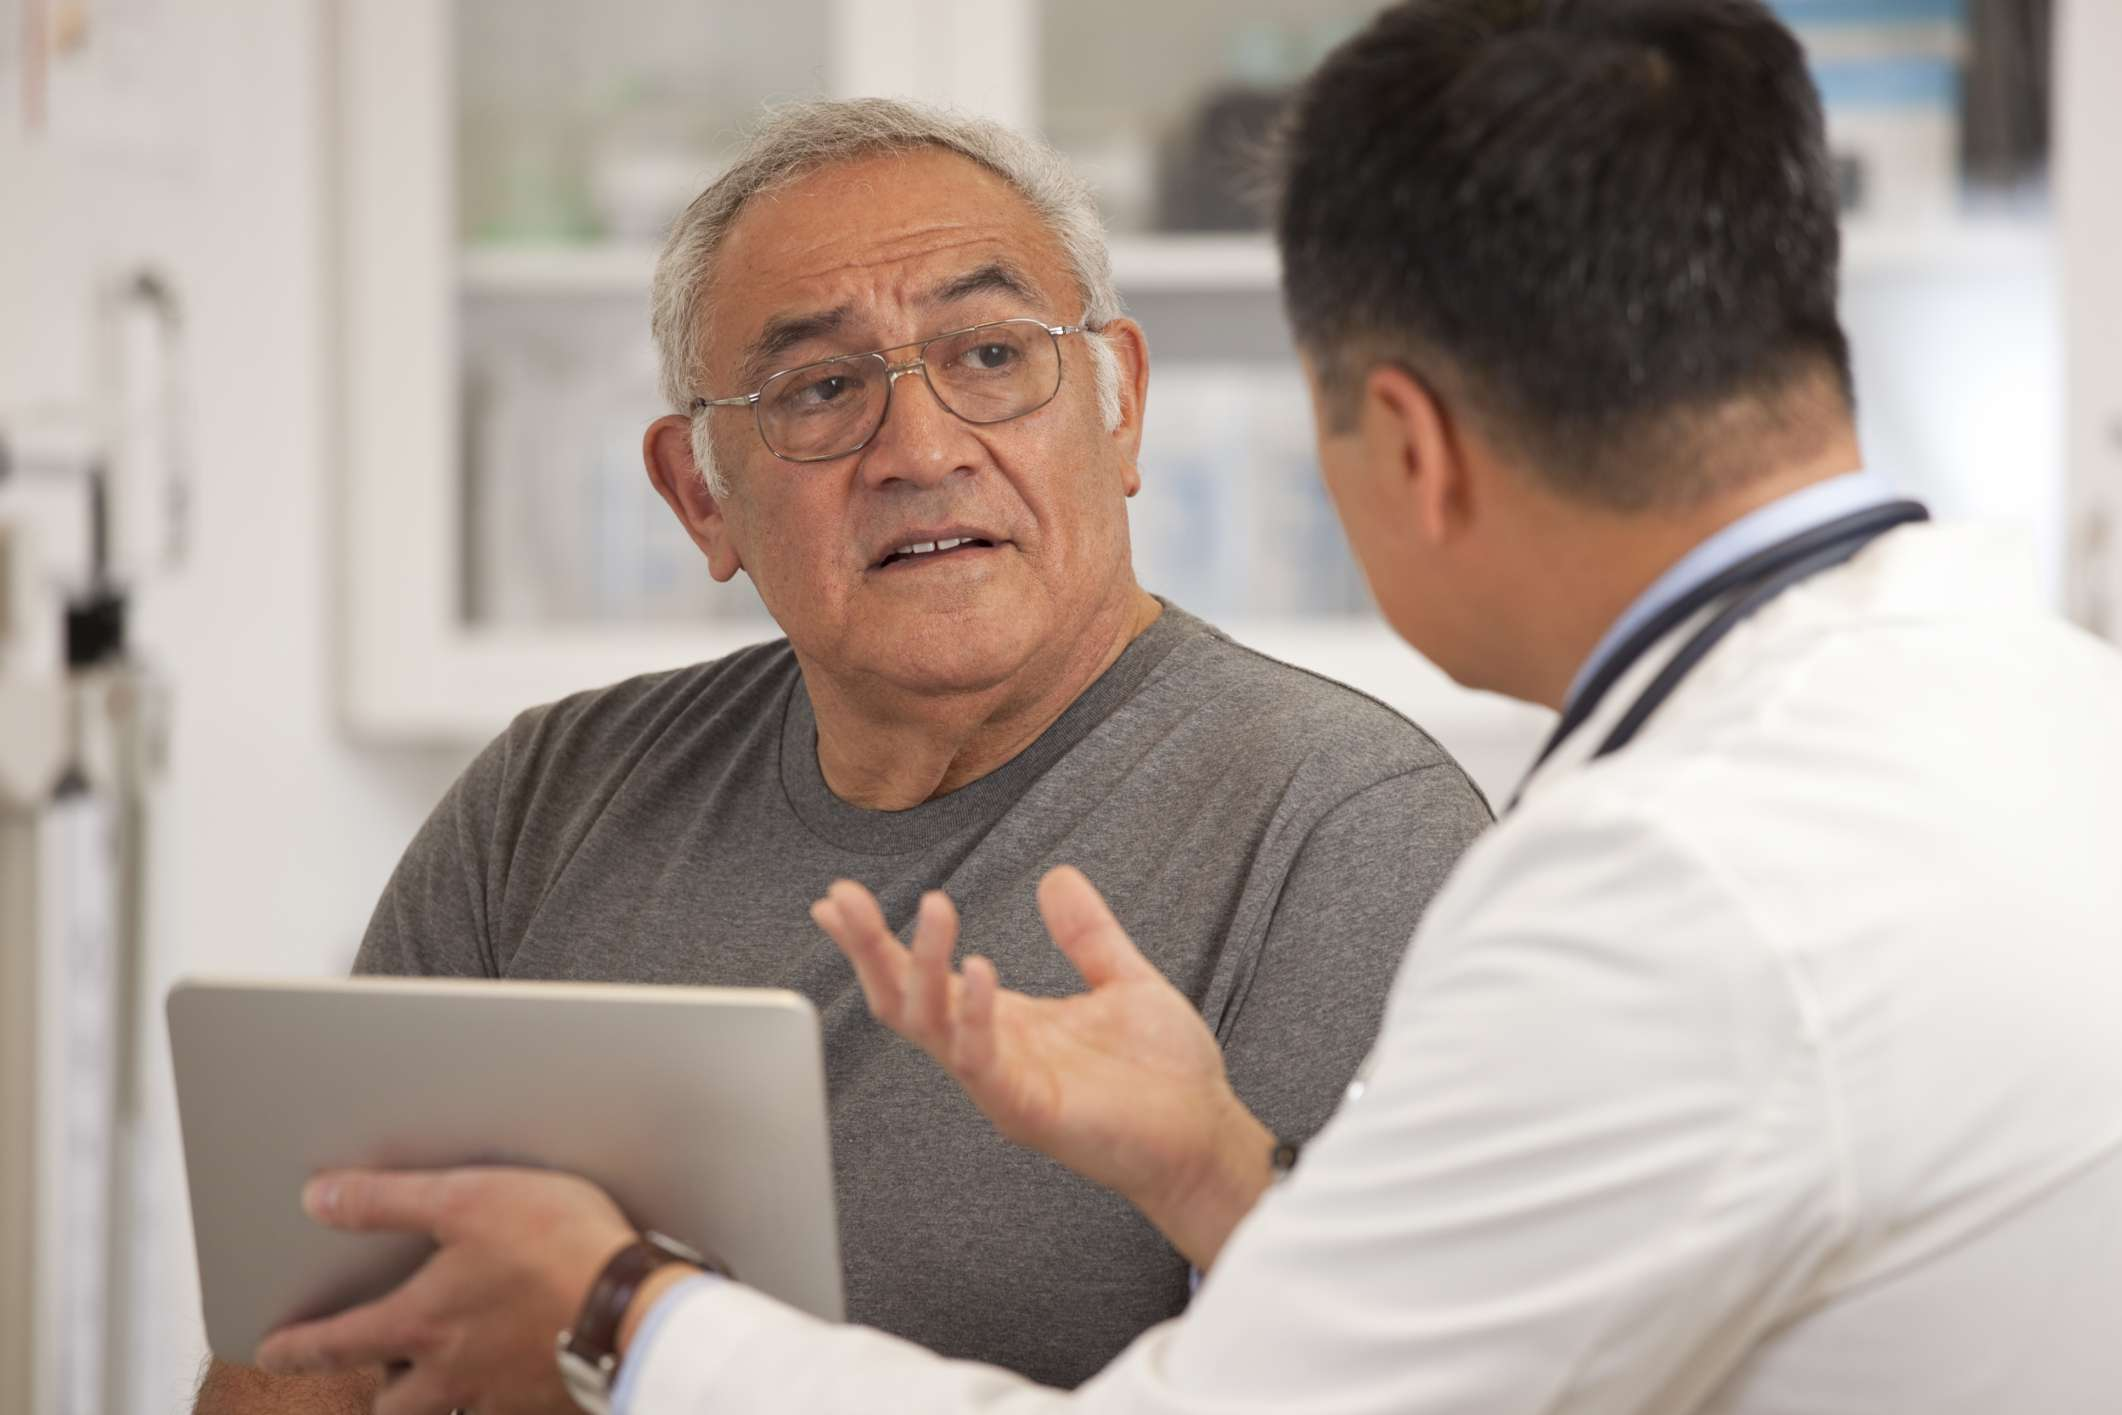 Doctor speaking with patient about medications and weight gain